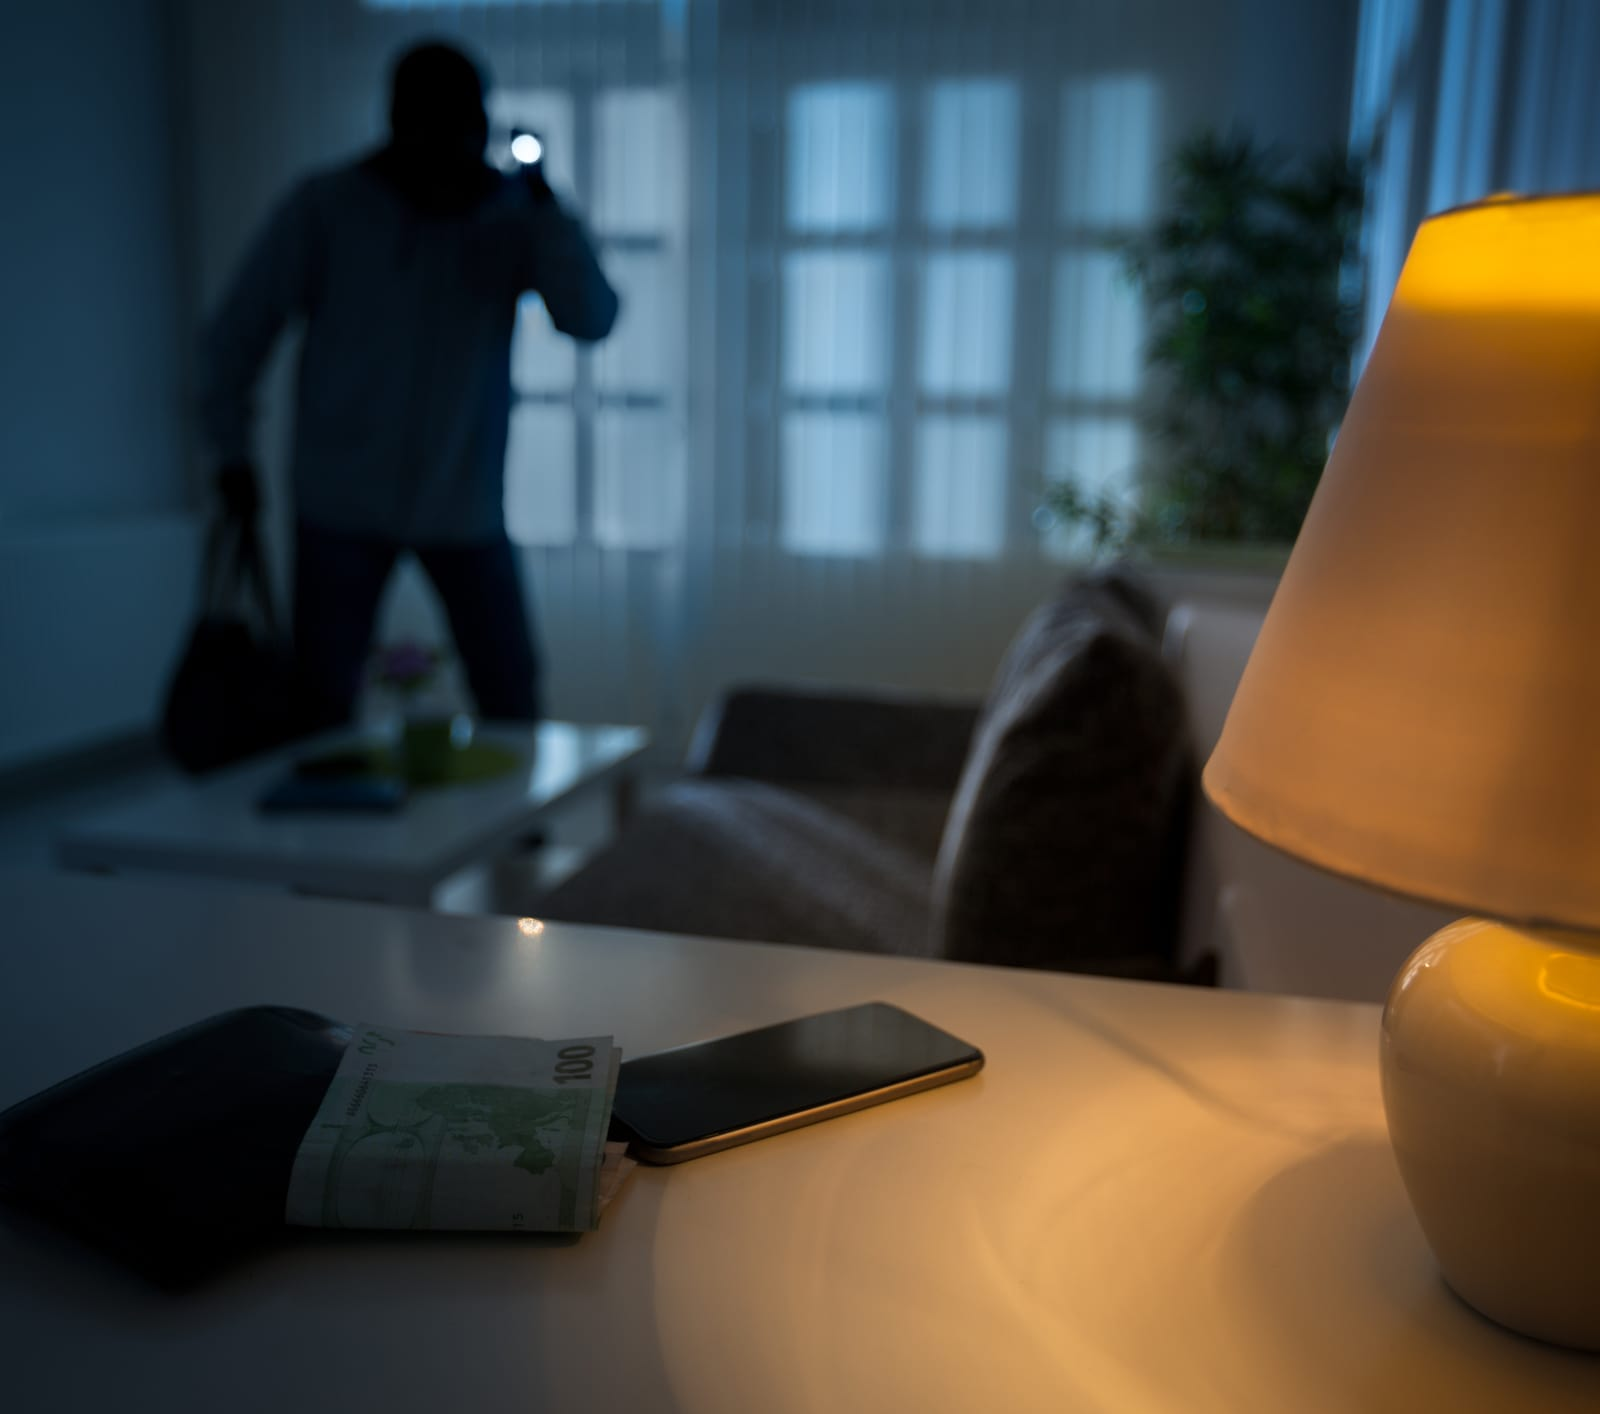 Does Homeowners Insurance Cover Theft? - ValuePenguin